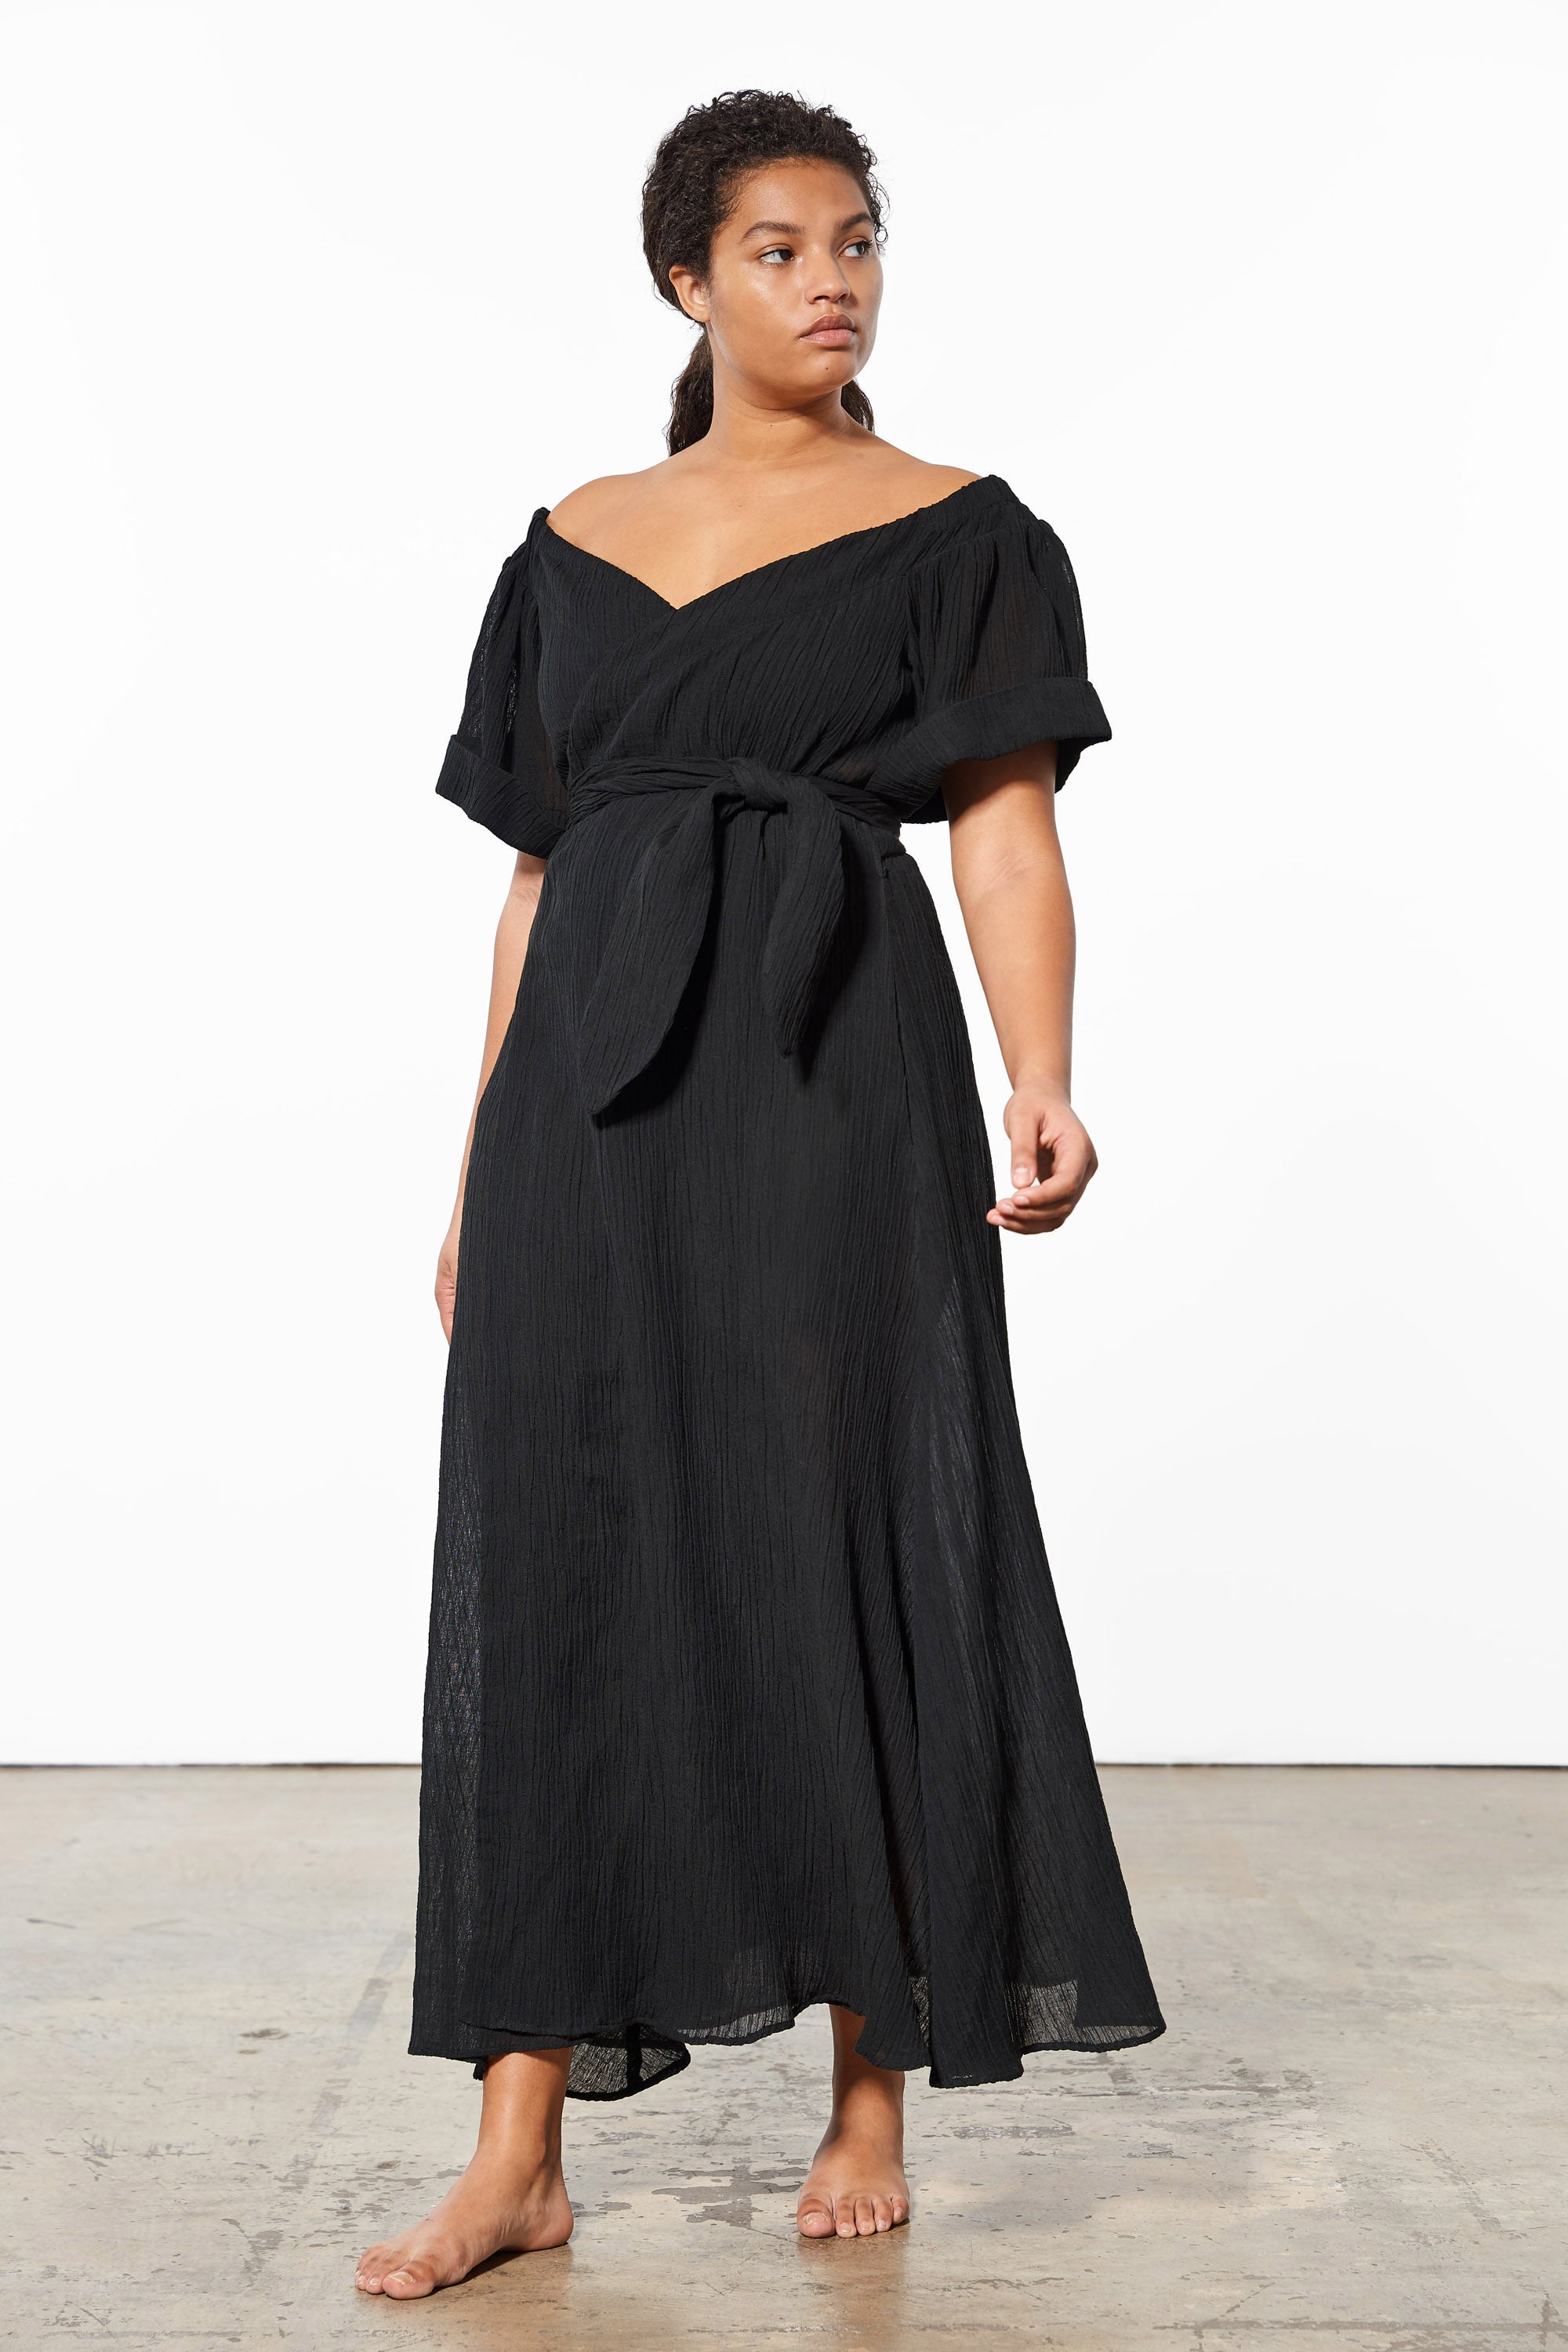 Mara Hoffman Extended Black Adelina Cover Up Dress in organic cotton and linen (front movement)